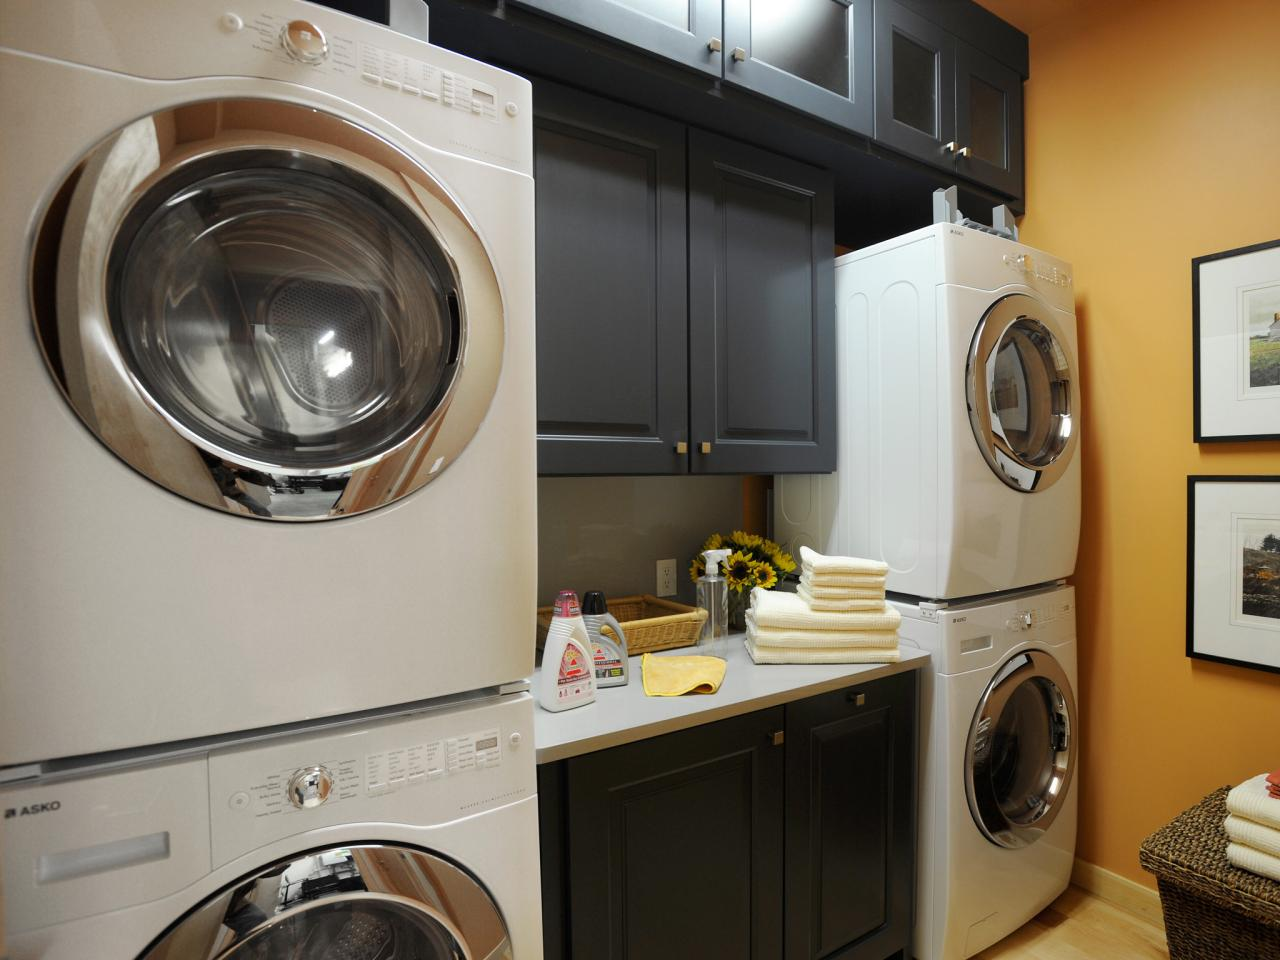 Laundry room ideas pictures options tips advice hgtv - Laundry room designs small spaces set ...